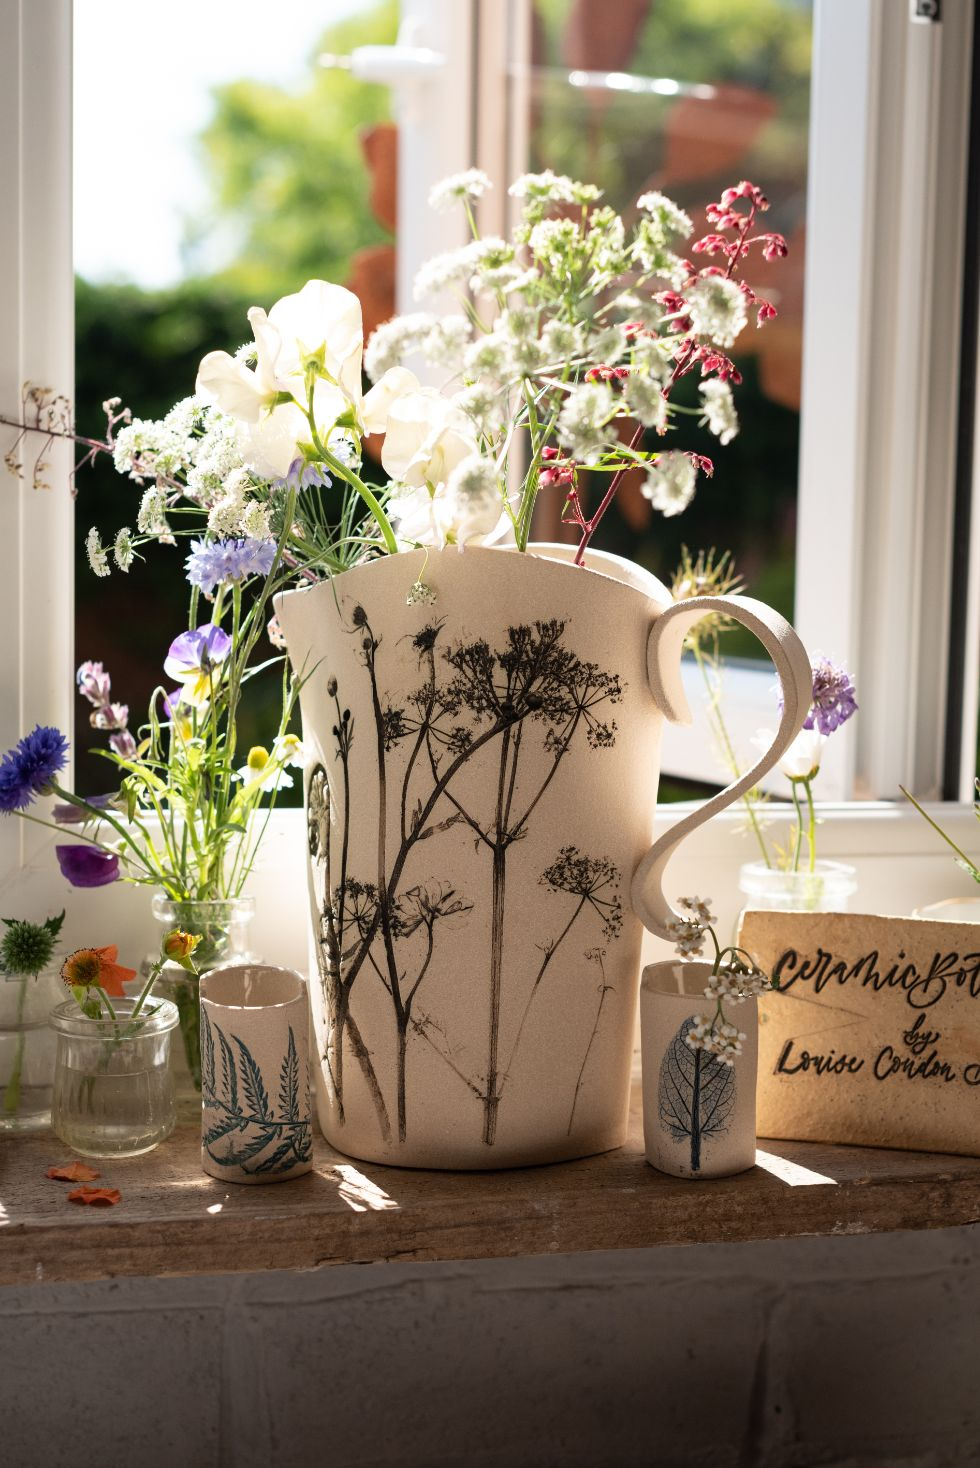 Press flower jug in the window made by Louise Condon, Ceramic Botanist